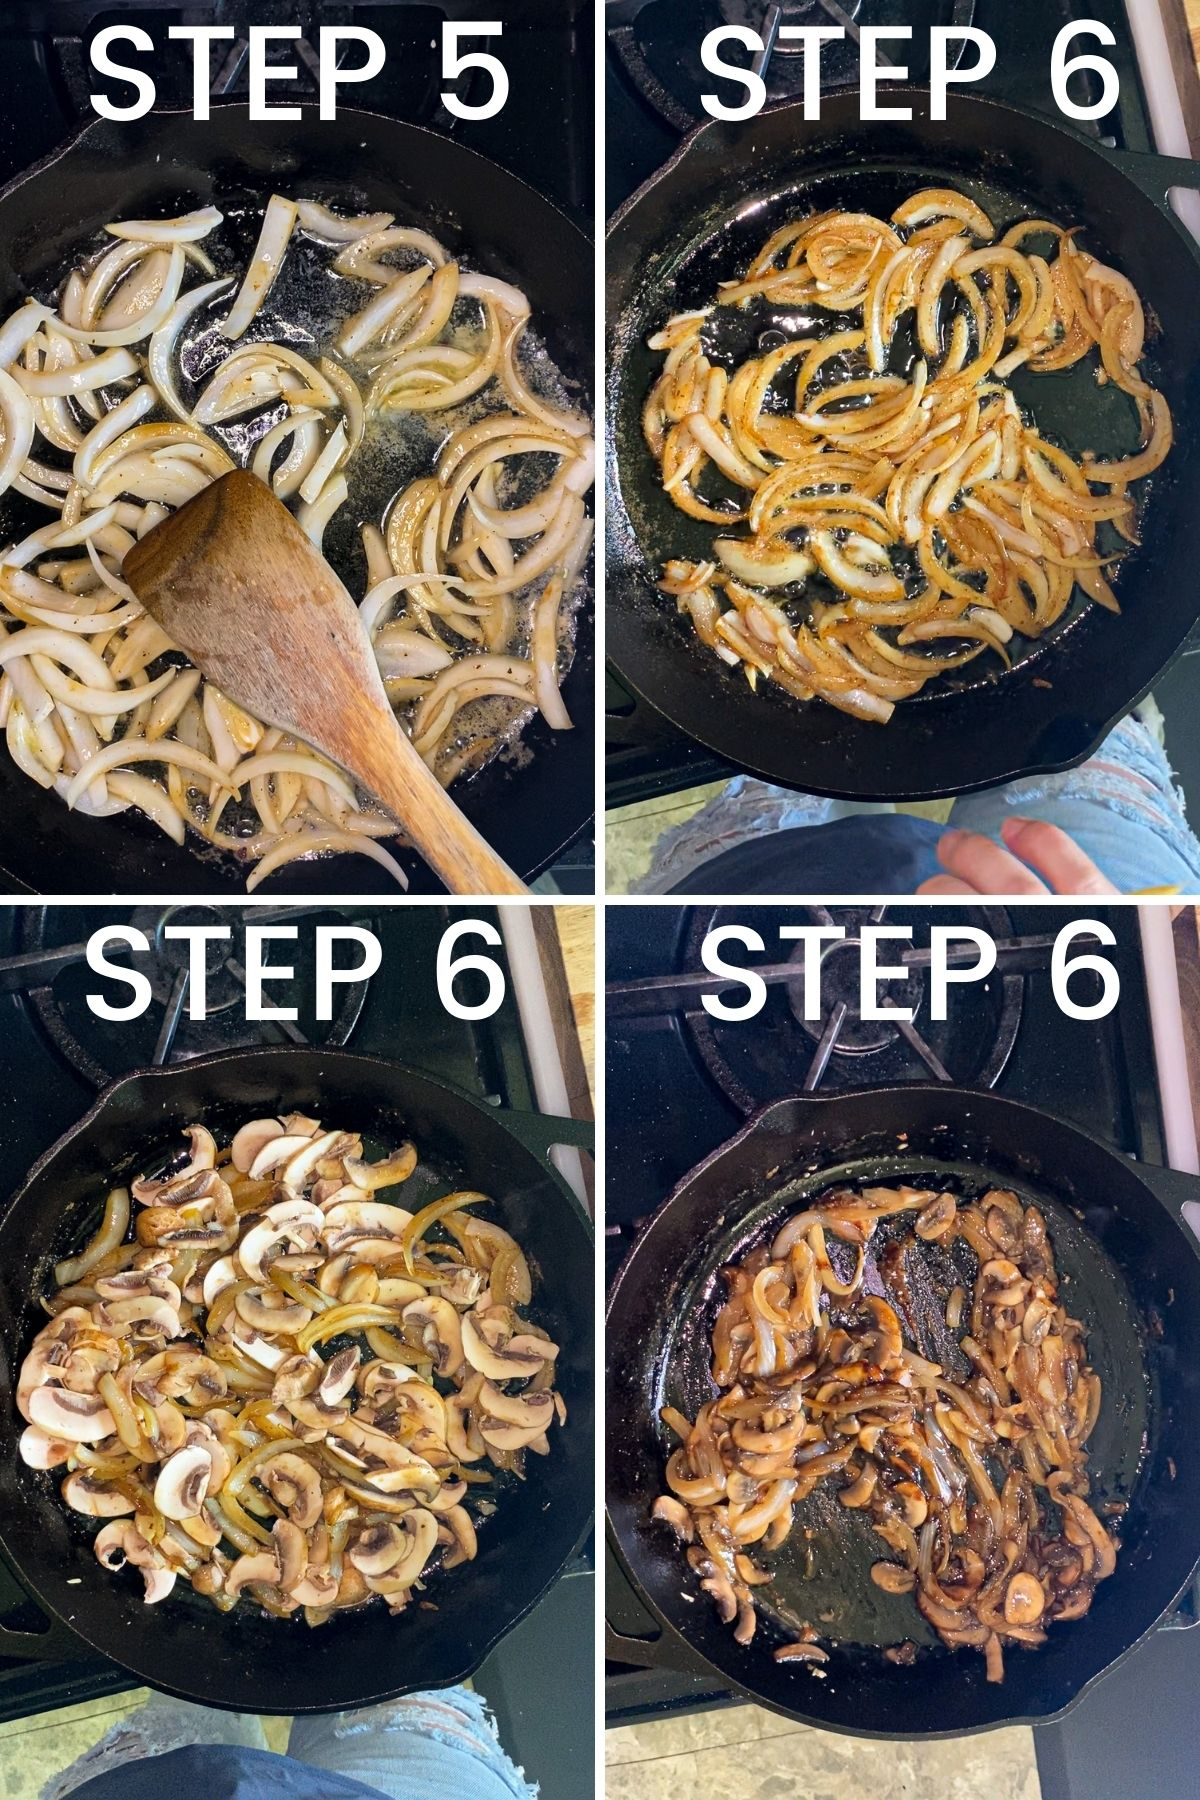 a four image collage showing the steps for cooking the onions, mushrooms, and garlic